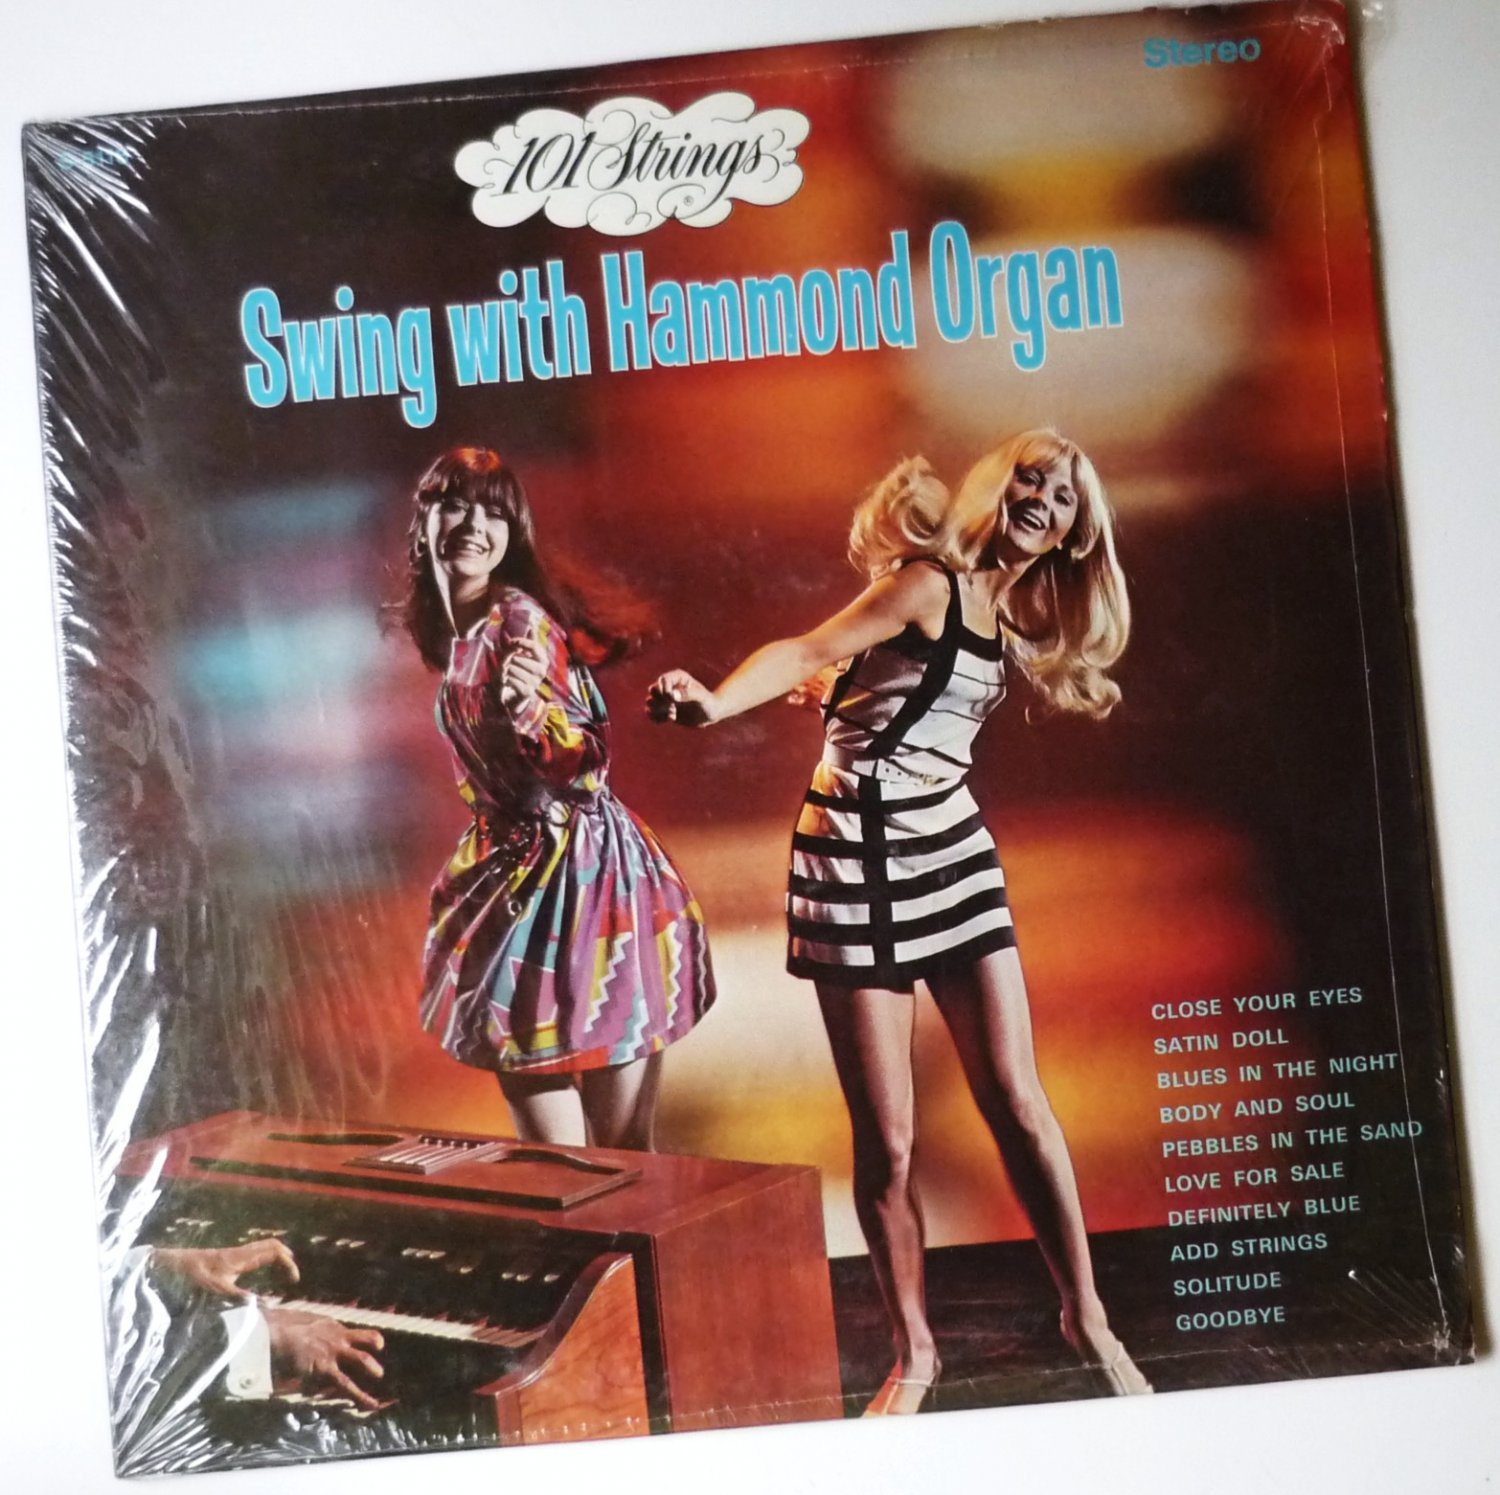 Swing With Hammond Organ lp - 101 Strings - Rare